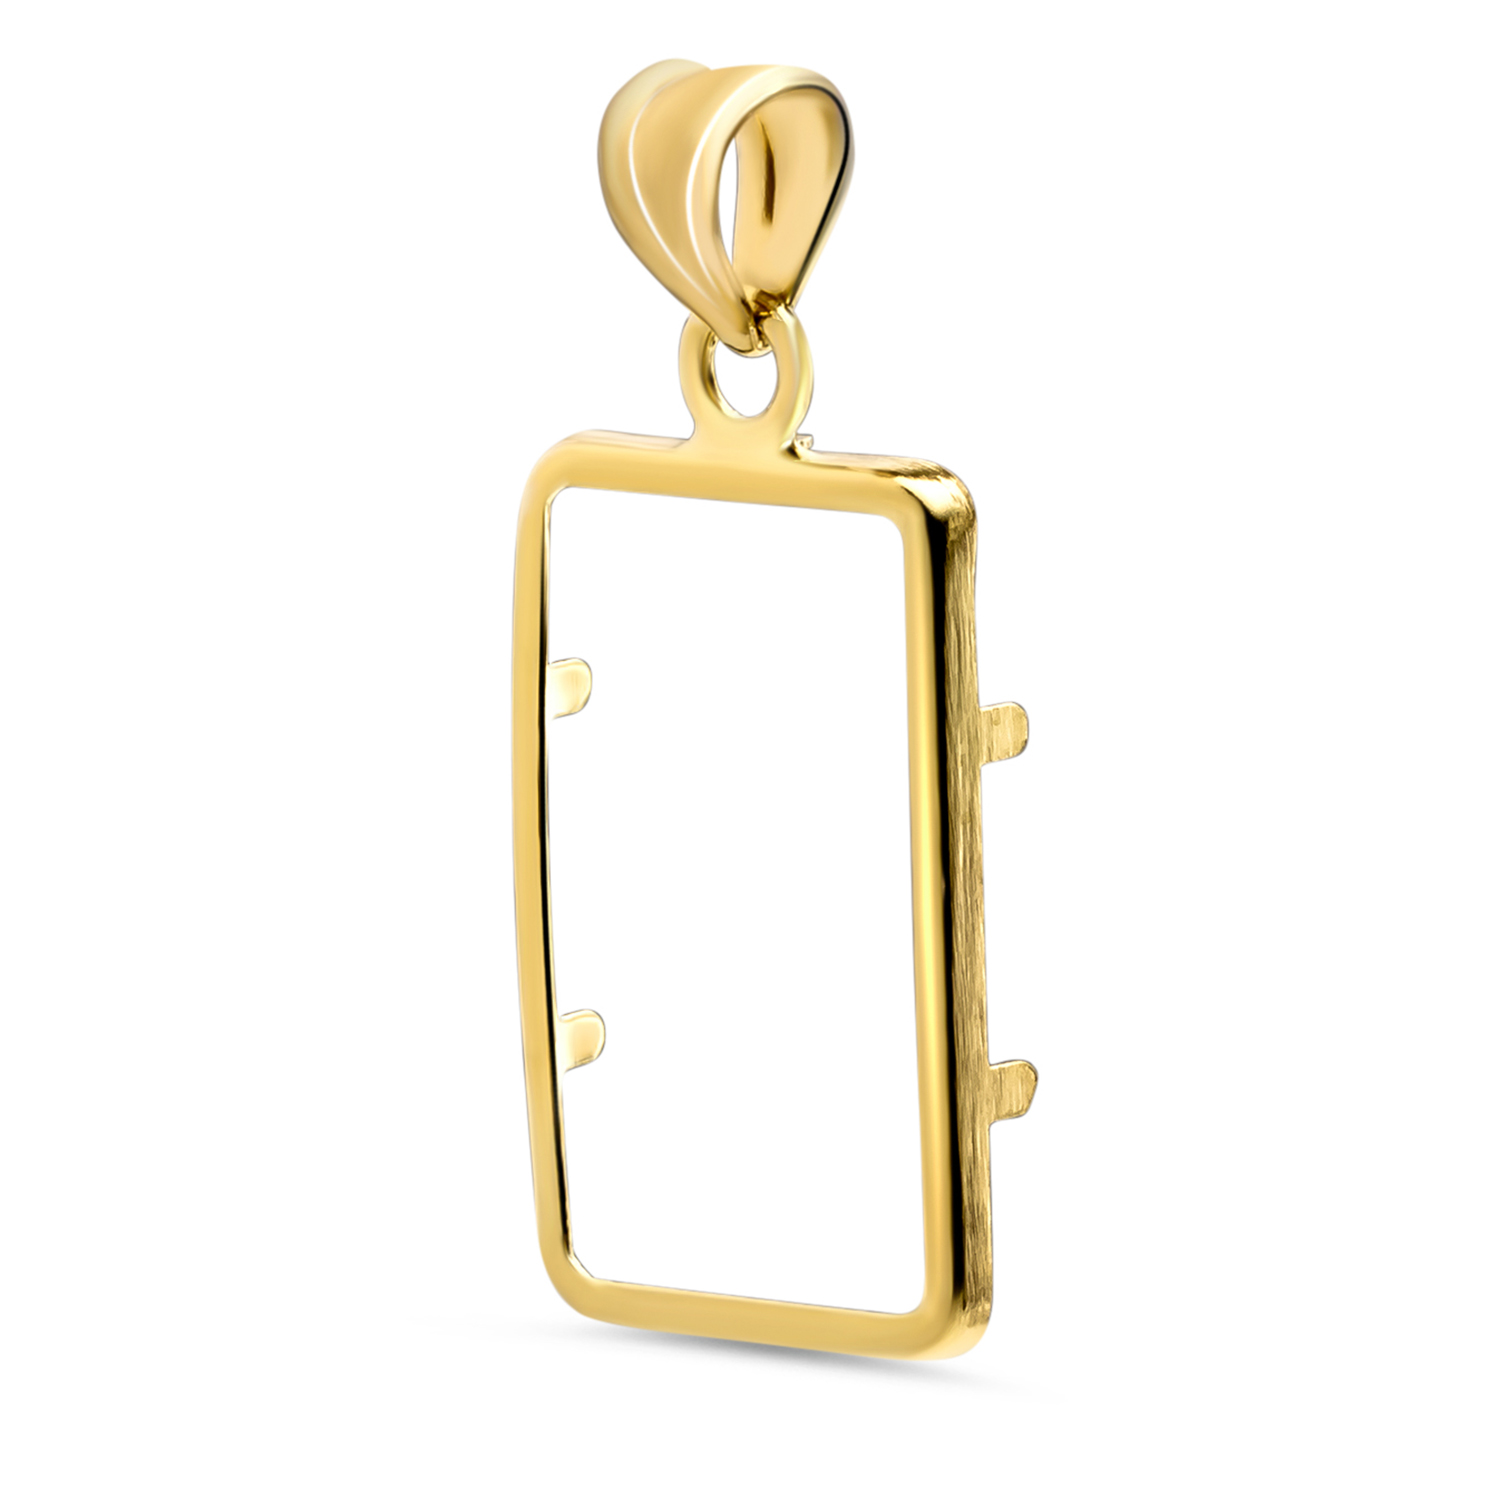 14K Gold Prong Plain-Front Bezel (5 gram Gold Bar)